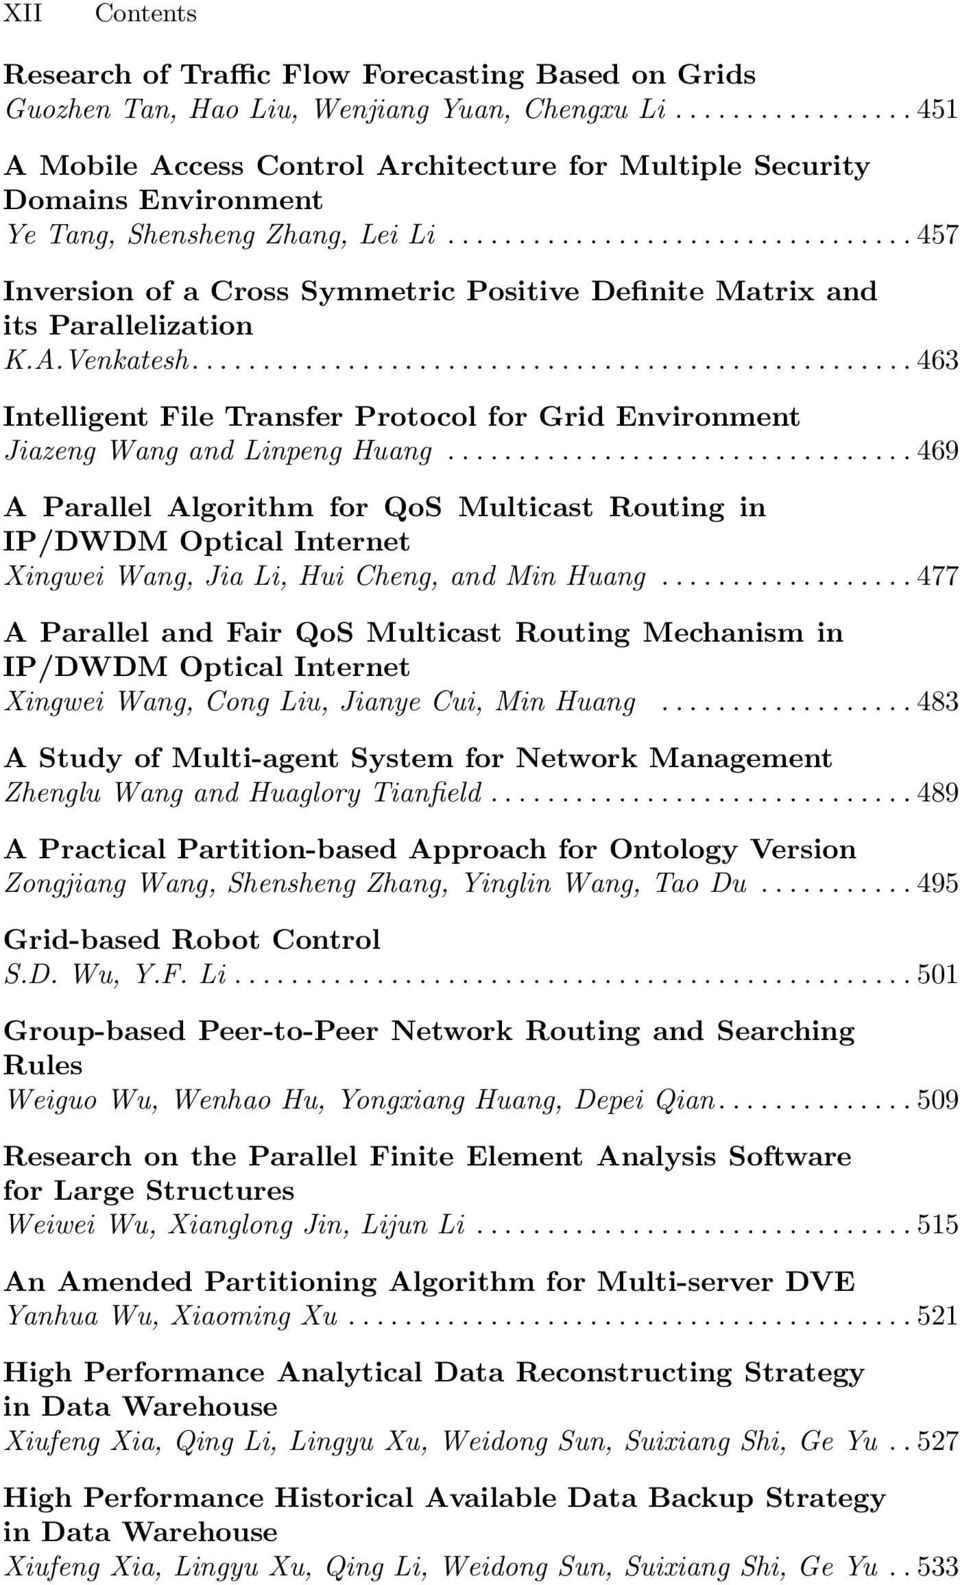 ..457 Inversion of a Cross Symmetric Positive Definite Matrix and its Parallelization K.A.Venkatesh...463 Intelligent File Transfer Protocol for Grid Environment Jiazeng Wang and Linpeng Huang.